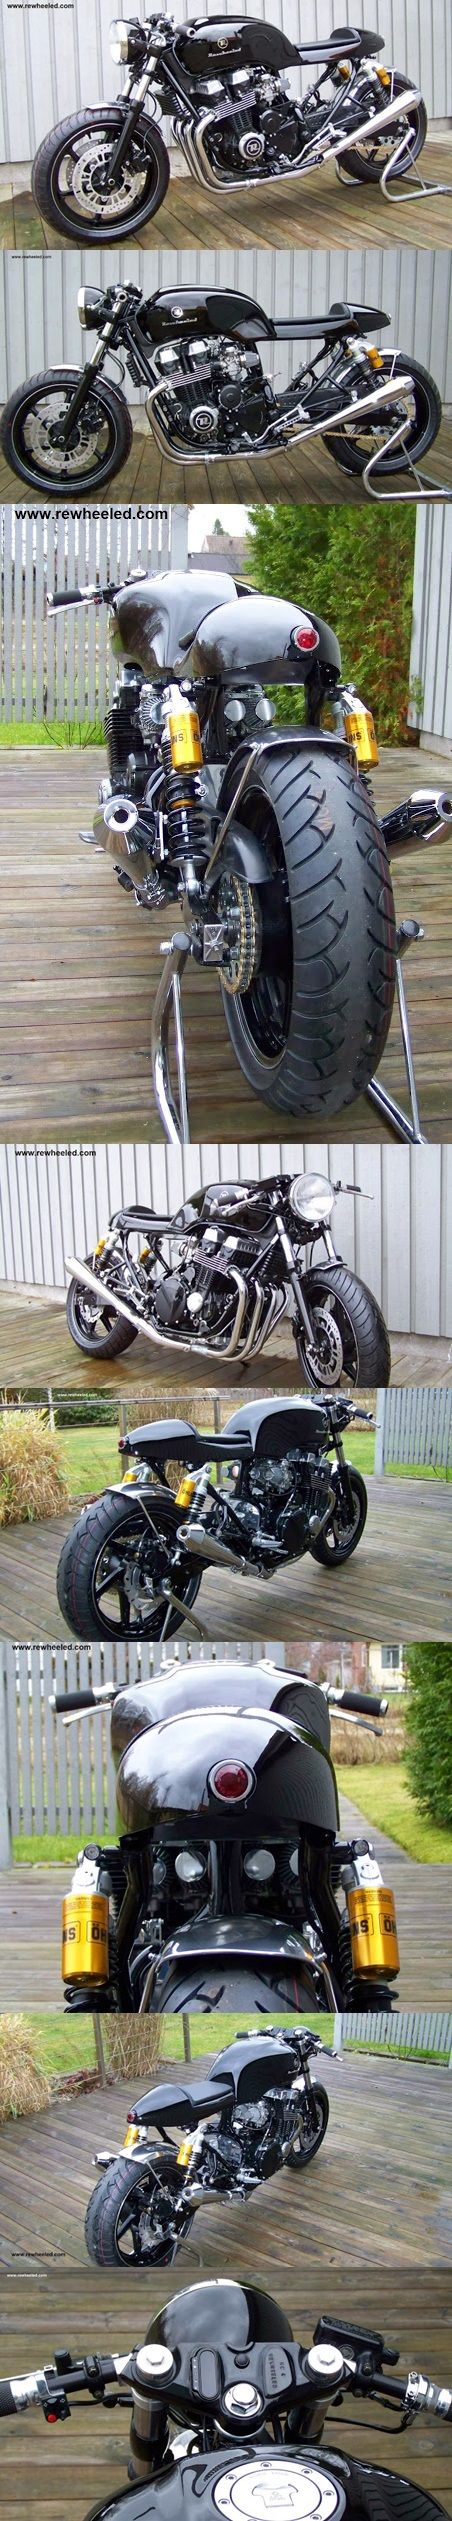 ....Caferacer based on a 2003 Honda CB 750 Sevenfifty. With brand new NOS engine, motogadget meter, Öhlins rear shocks, black leather seatpadding, alu fenders, RAASK rearsets, Rewheeled seat.